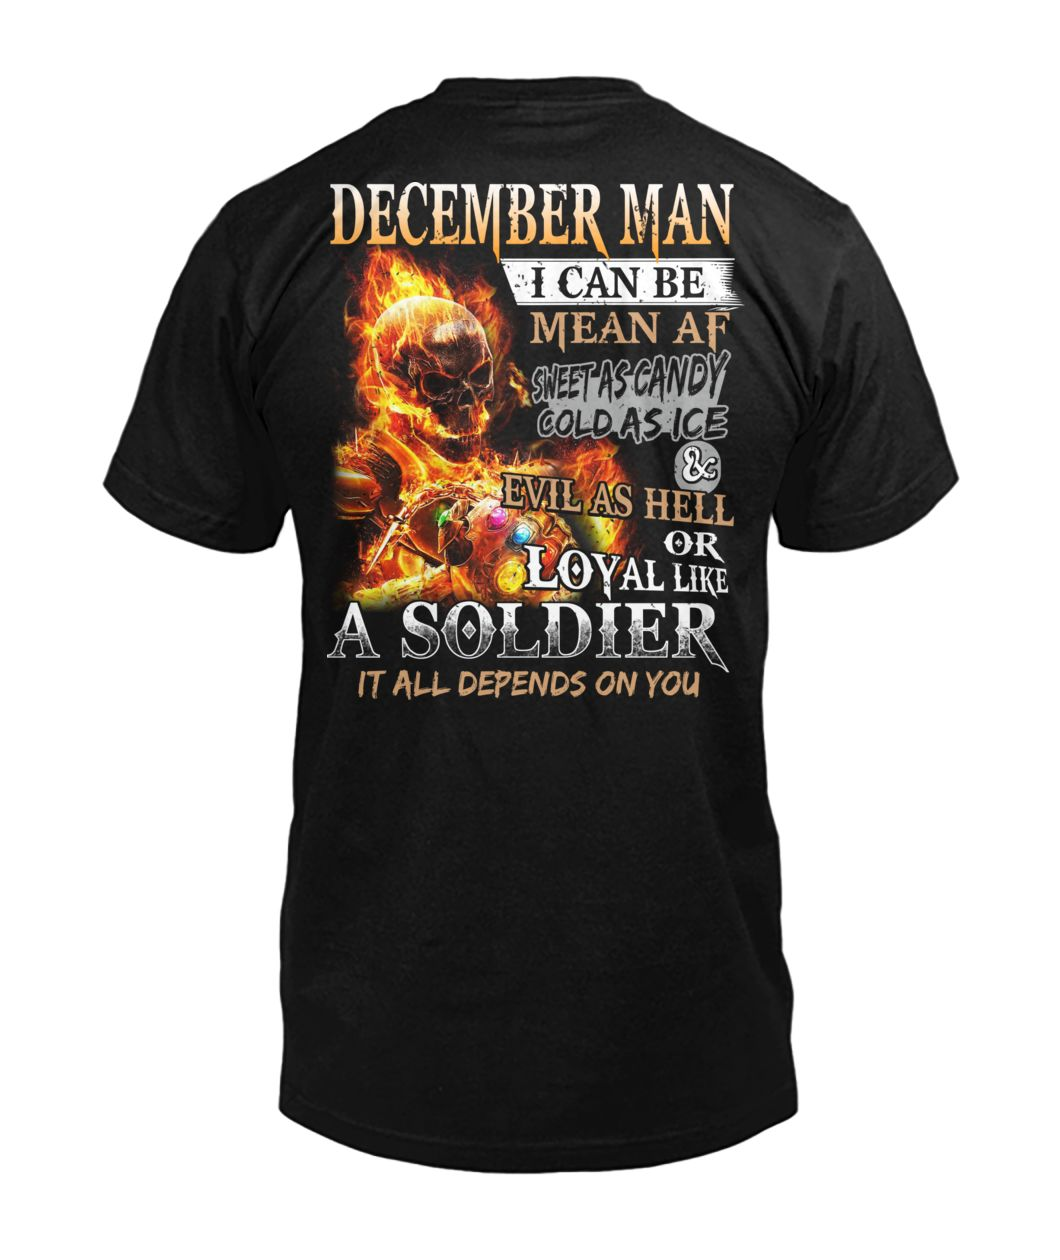 December man I can be mean af sweet as candy gold as ice and evil as hell mens v-neck